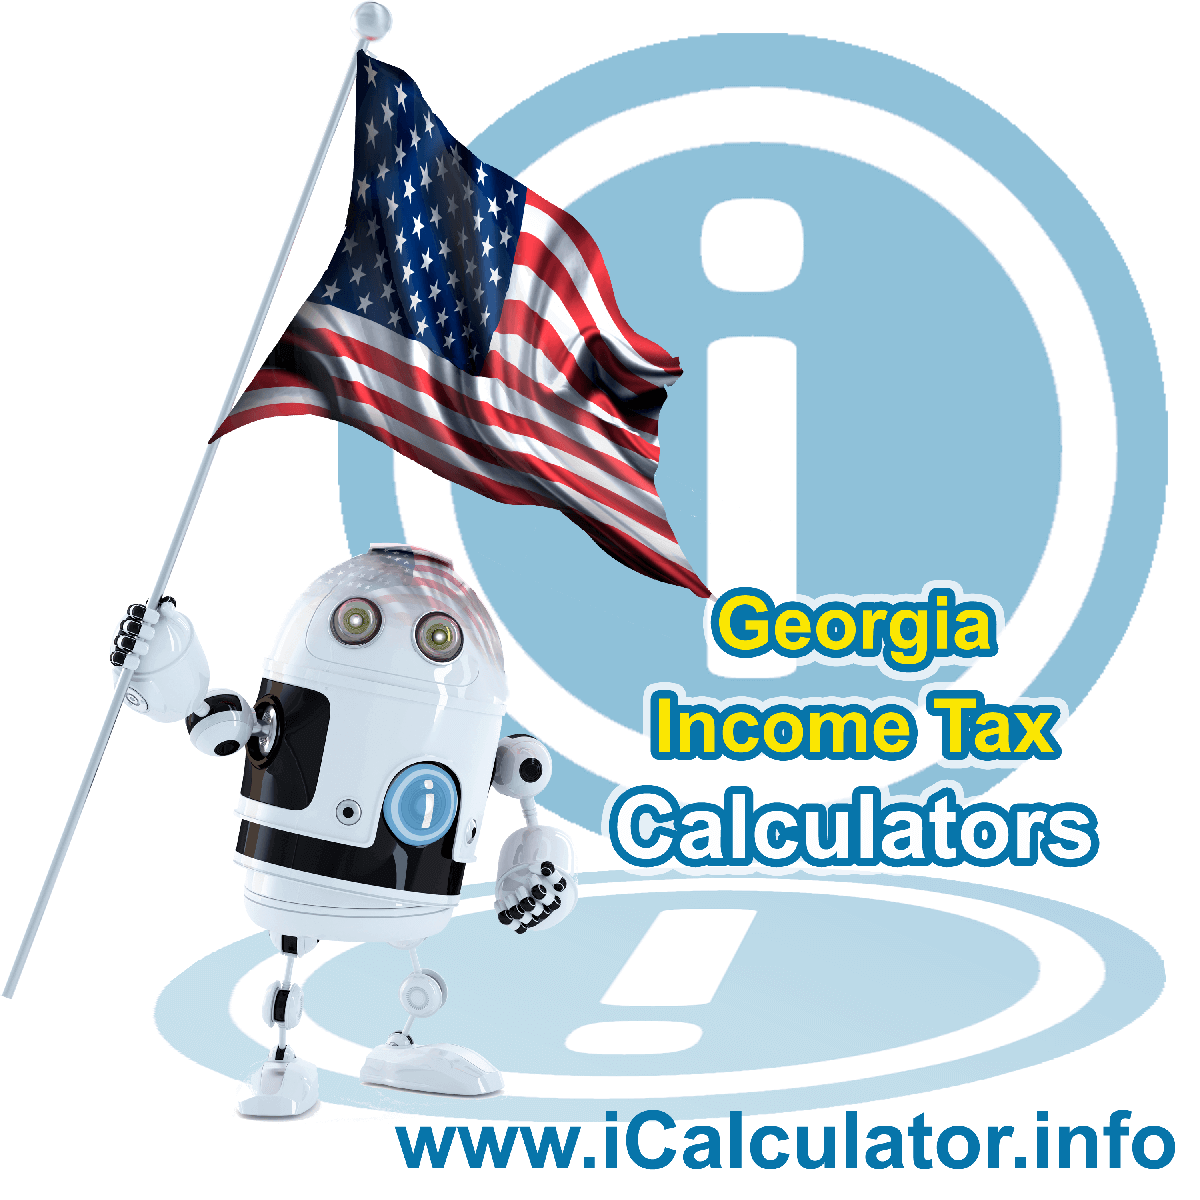 Georgia Income Tax Calculator. This image shows a new employer in Georgia calculating the annual payroll costs based on multiple payroll payments in one year in Georgia using the Georgia income tax calculator to understand their payroll costs in Georgia in 2020